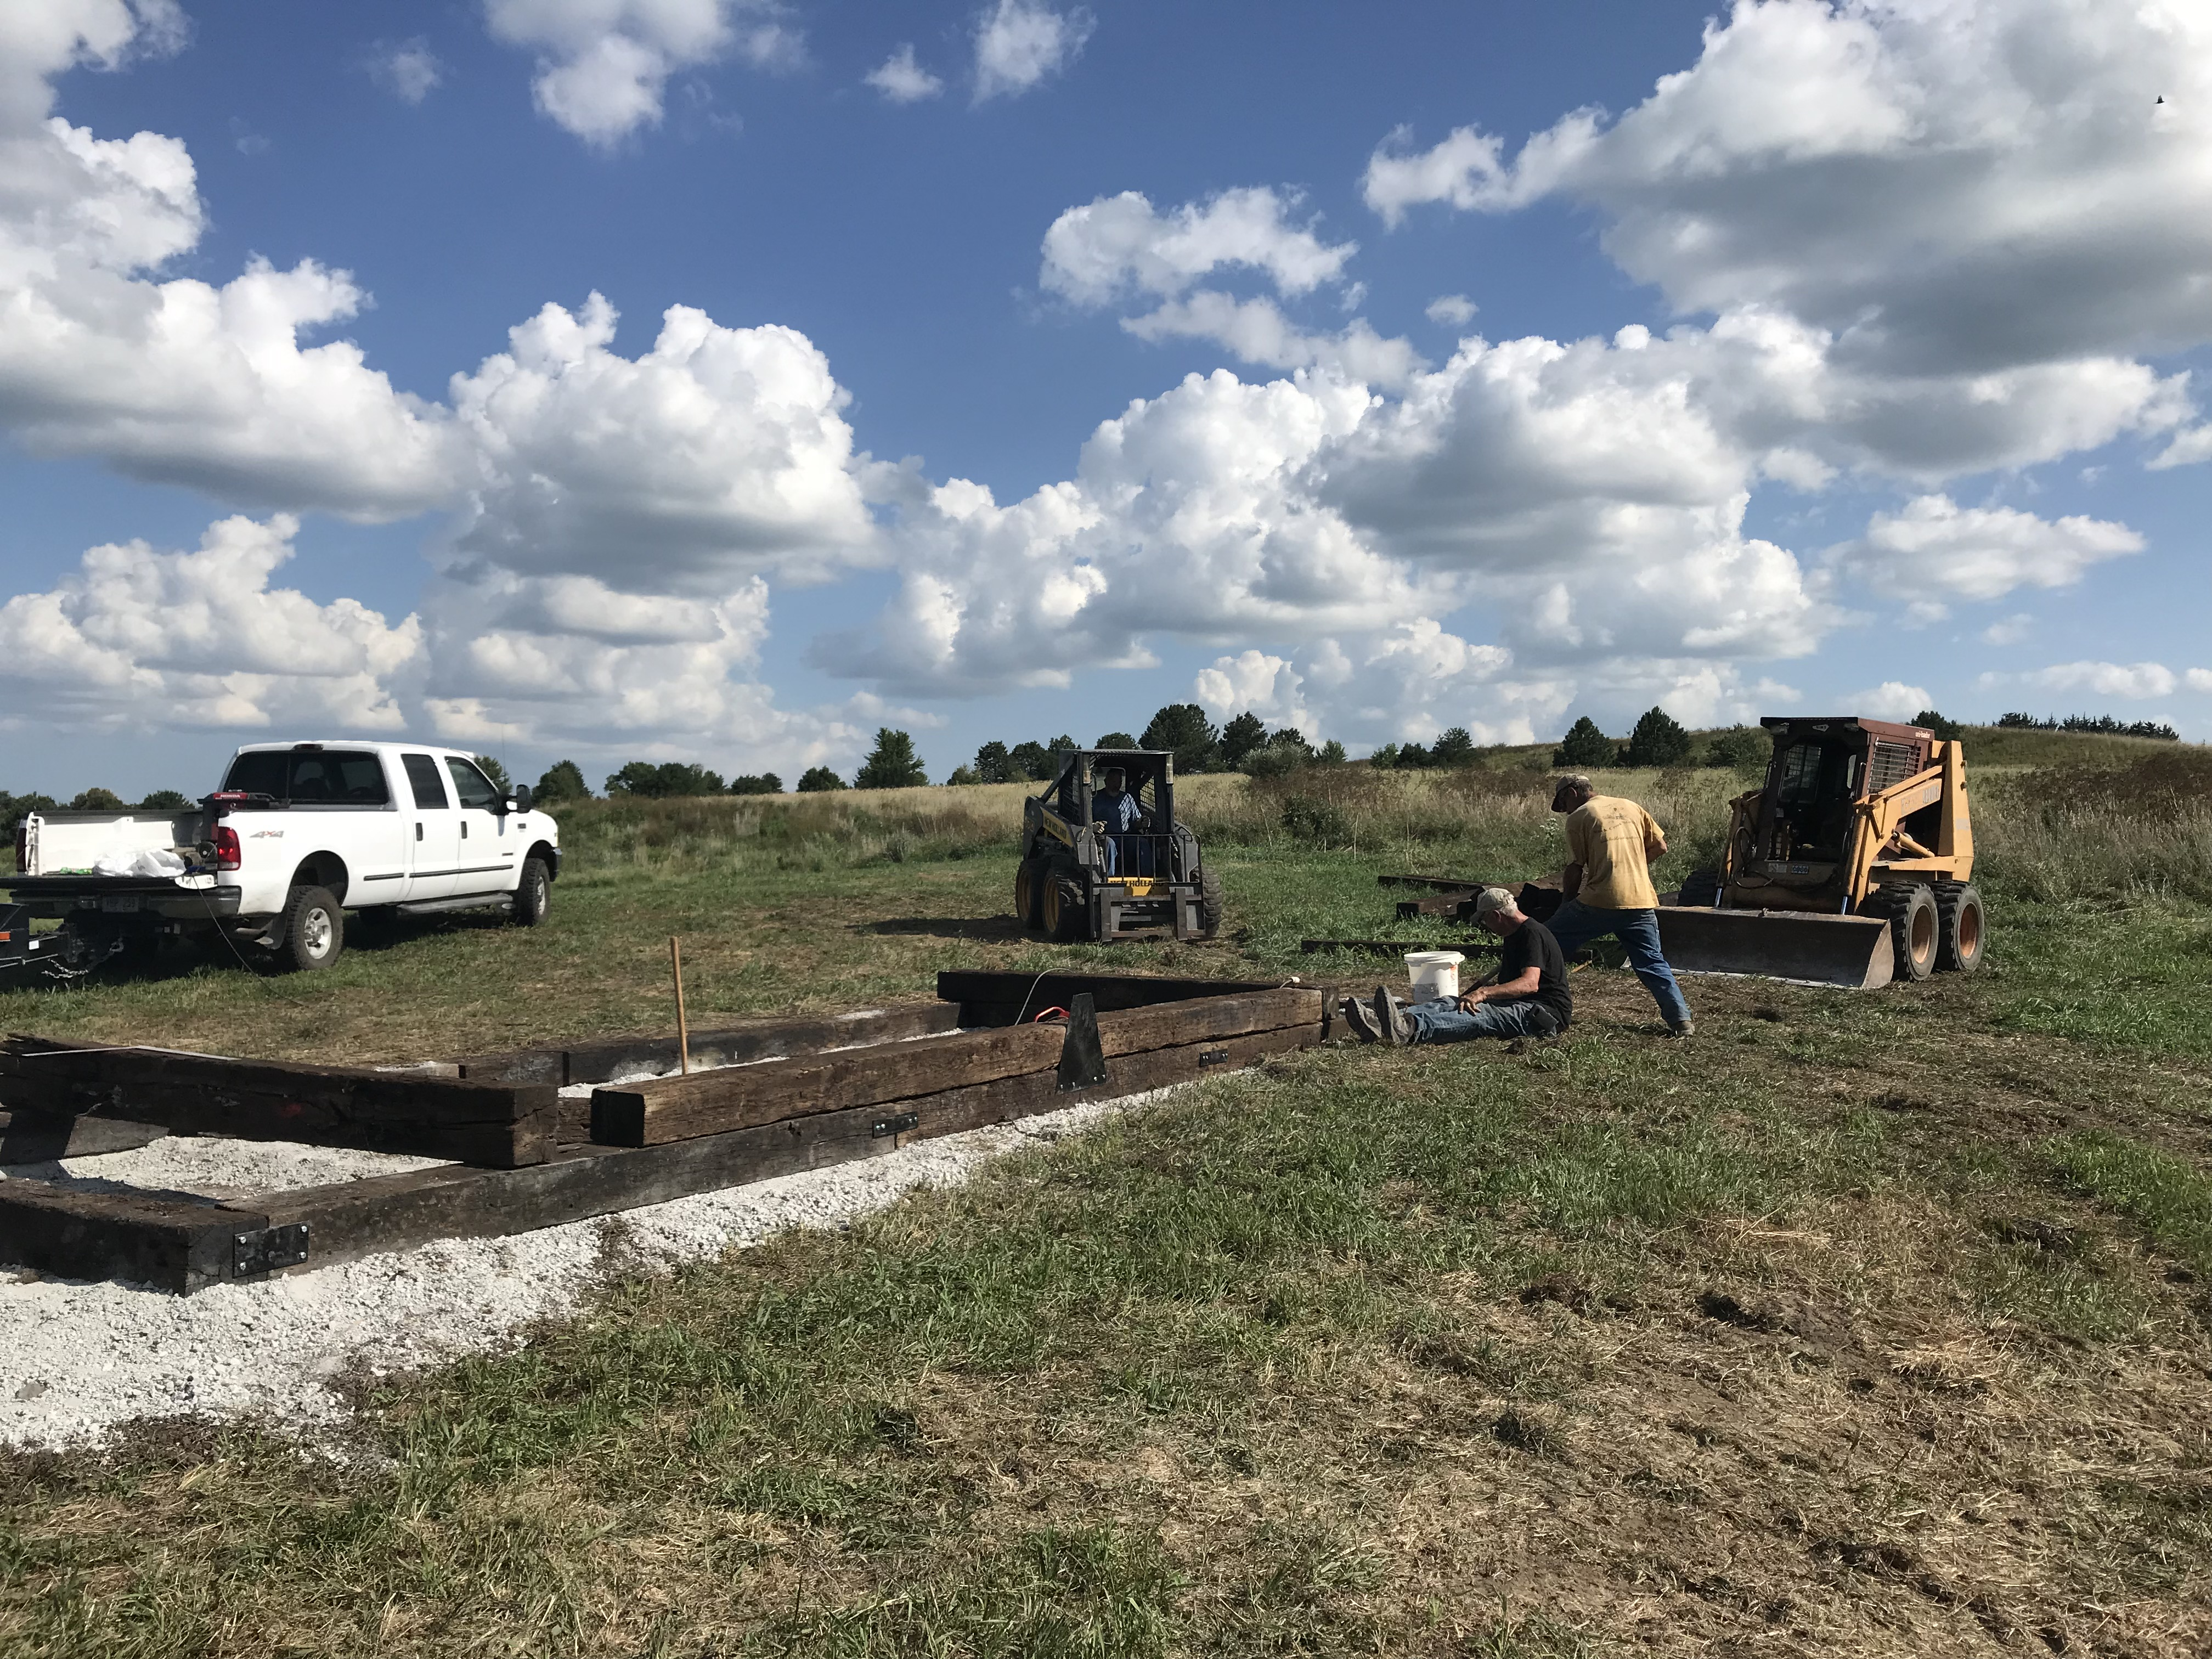 Construction Begins on Trail Activity Course